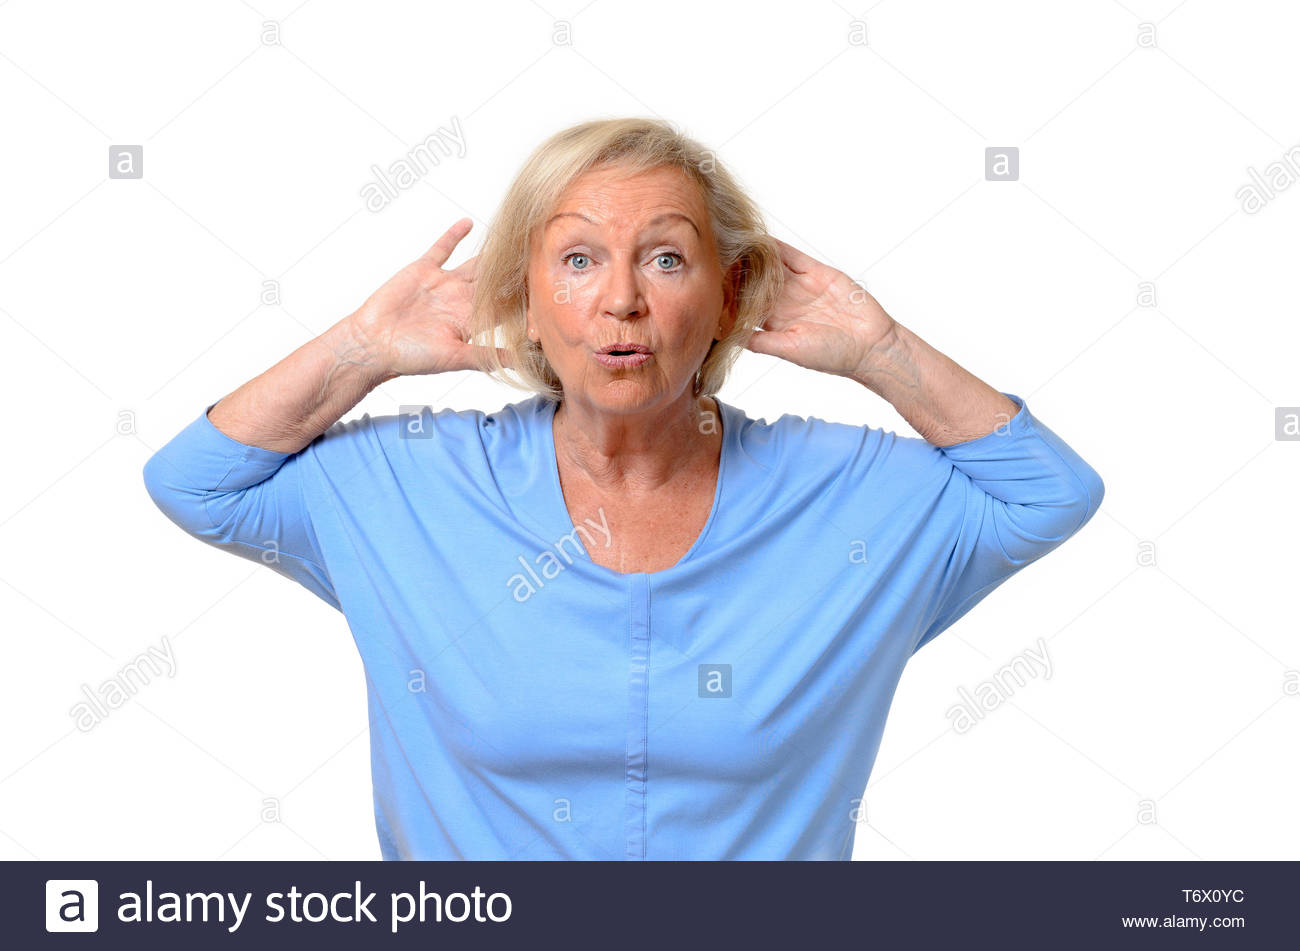 Wide-eyed senior woman with hands behind head - Stock Image